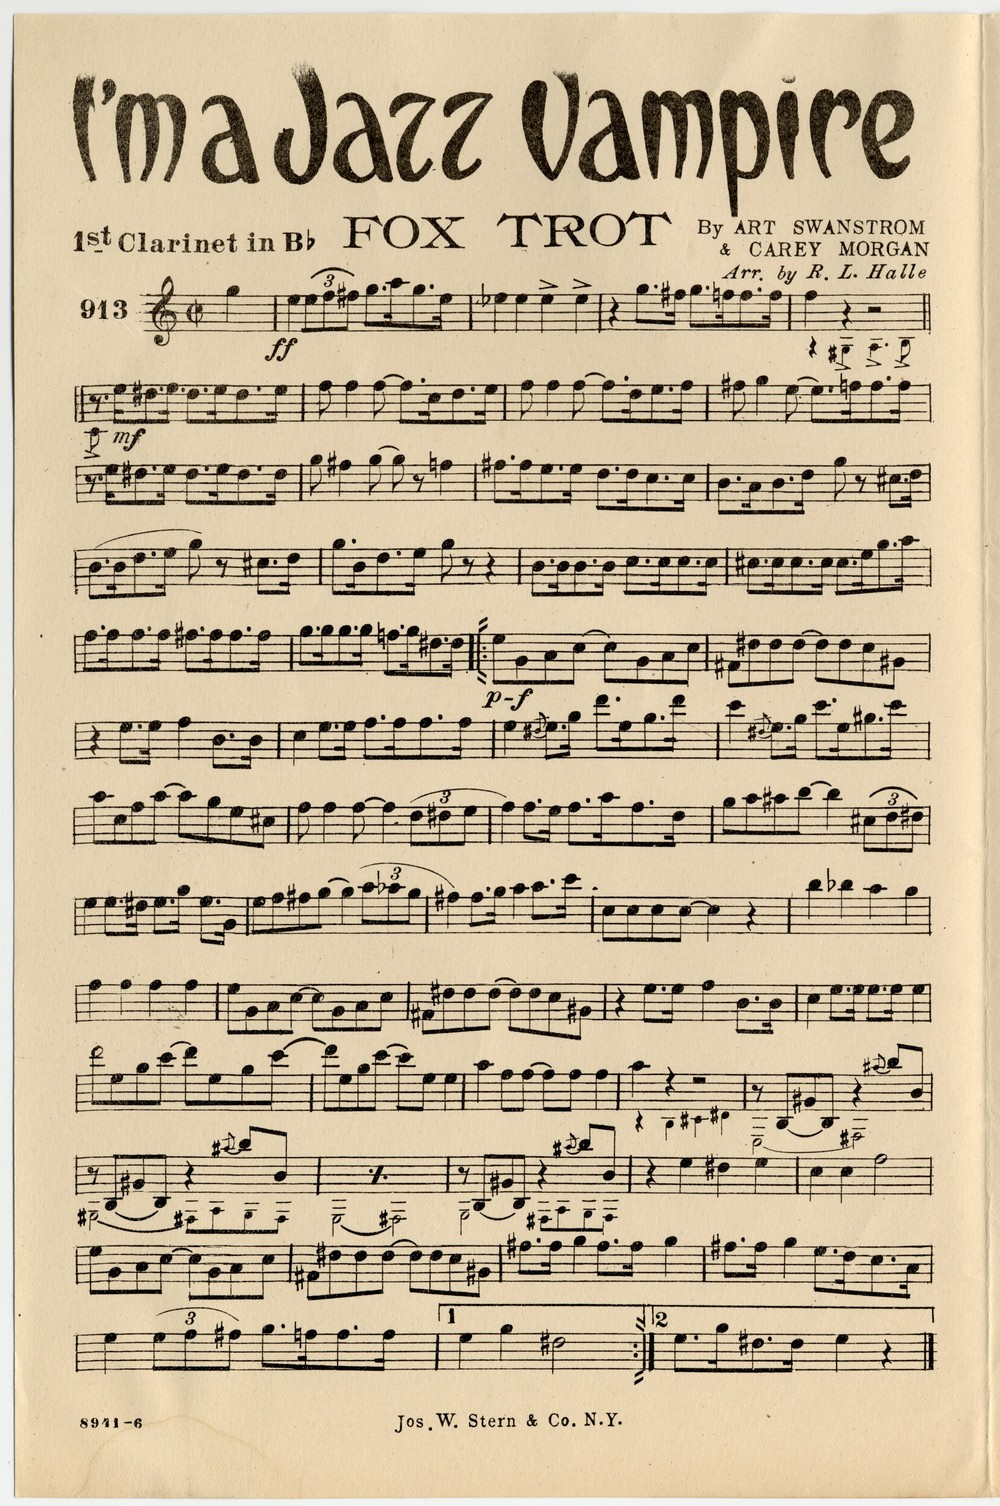 Clarinet Sheet Music for I'm a Jazz Vampire (by  by Carey Morgan; Arthur Swanstrom; Aileen Stanley)  via  The Library of Congress